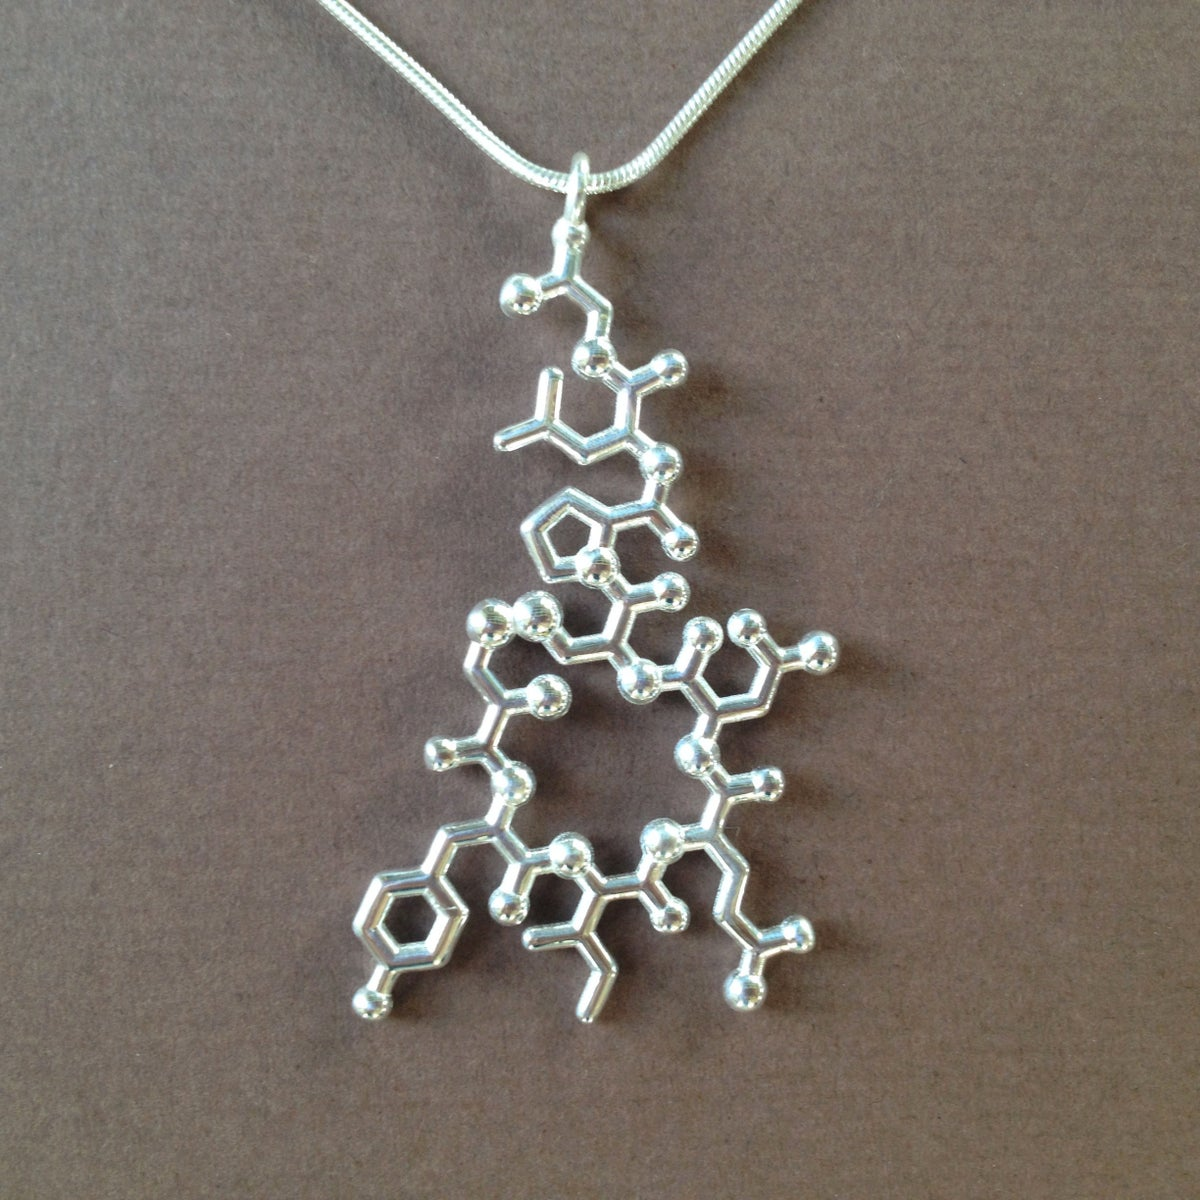 Image of oxytocin necklace - dangling